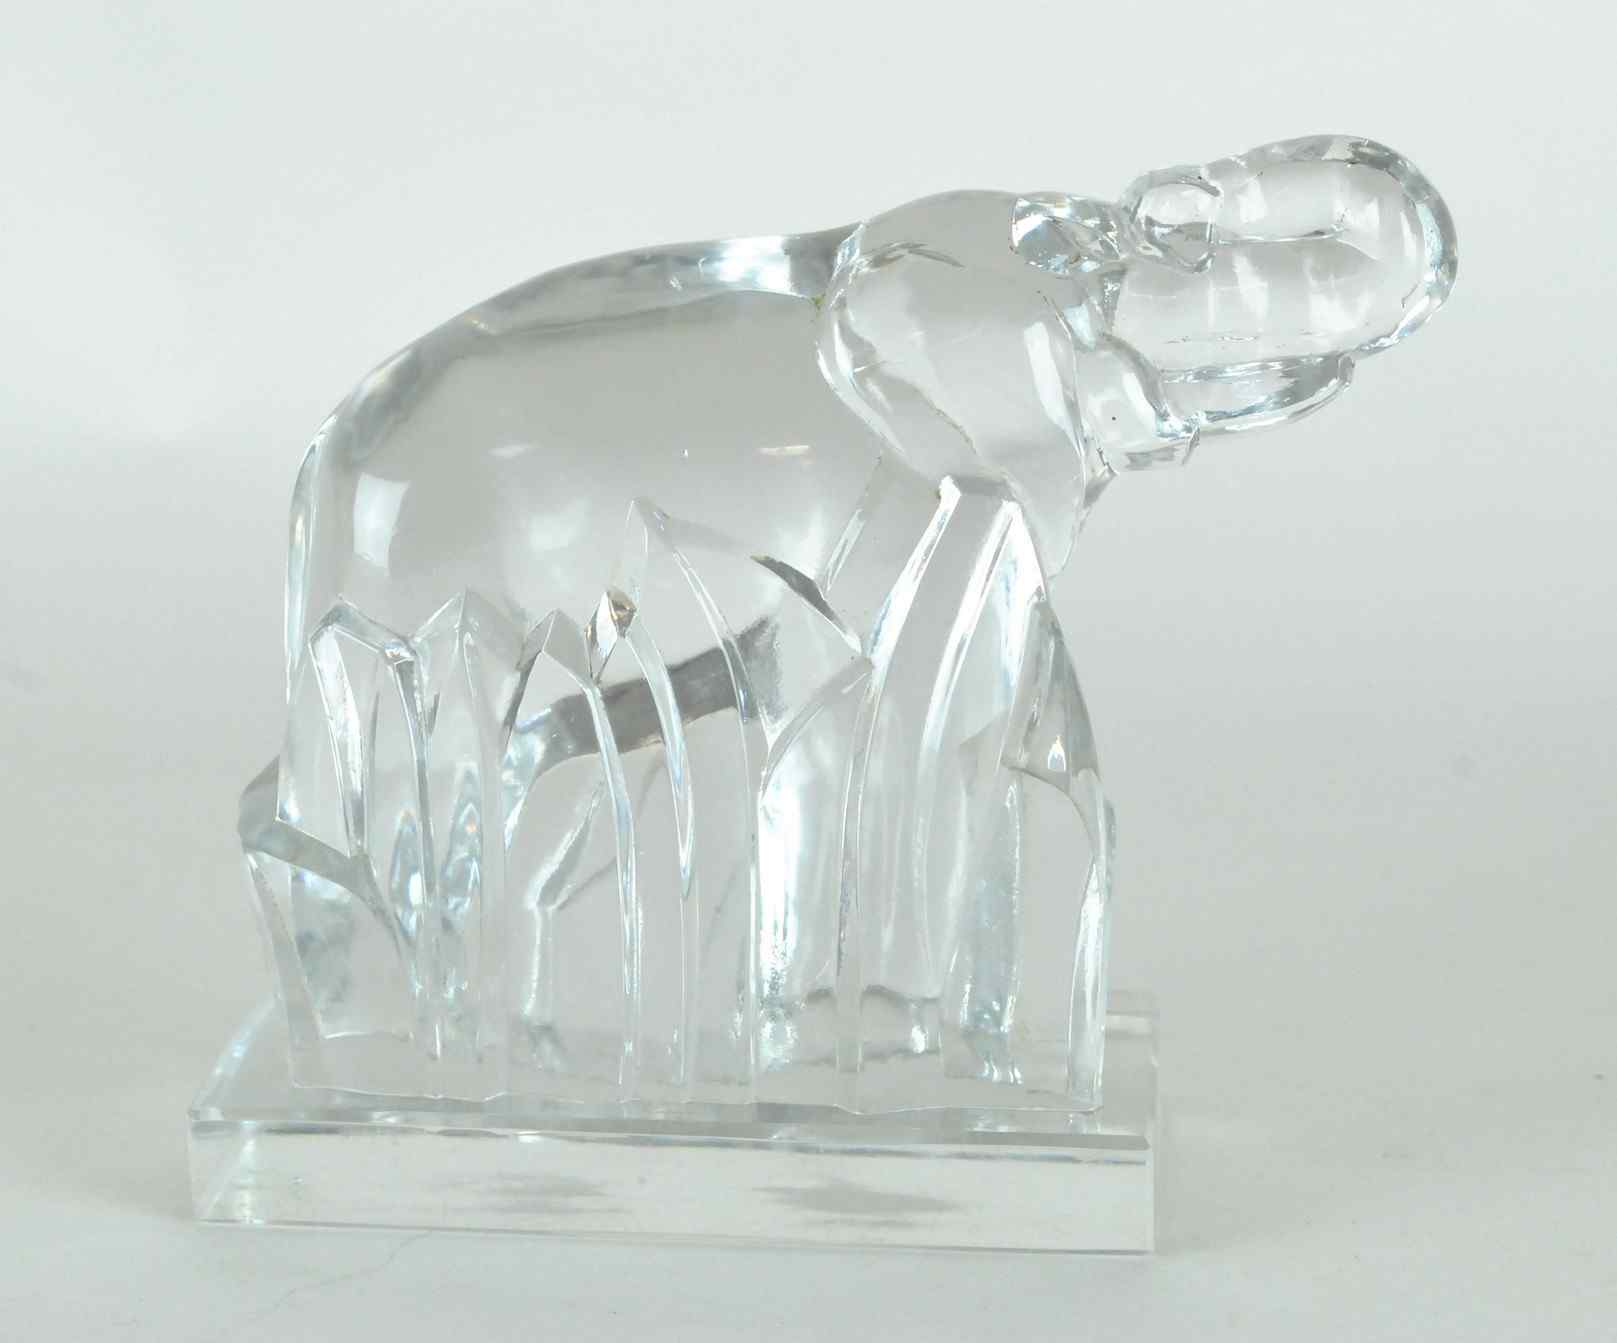 G Chevalier pour Baccarat, Crystal Elephant, XX secolo